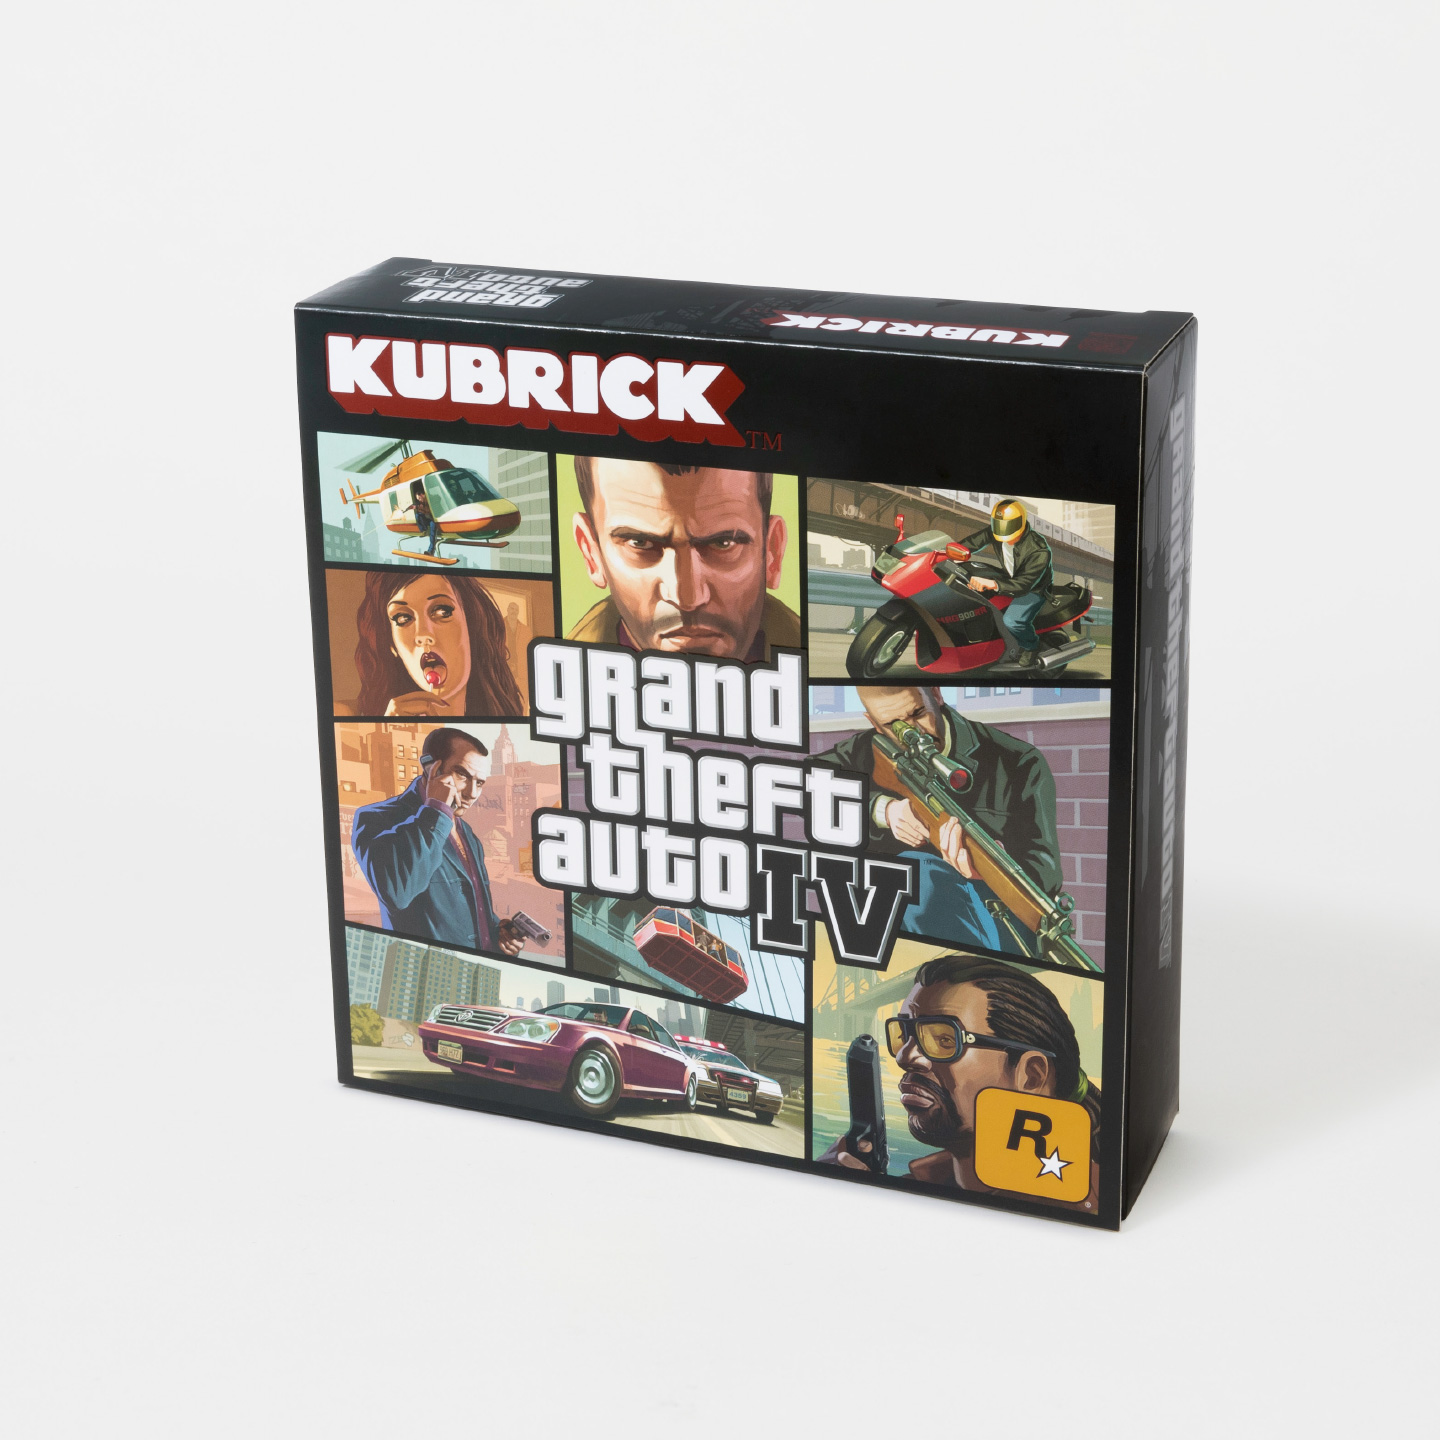 Grand Theft Auto IV Kubrick Set